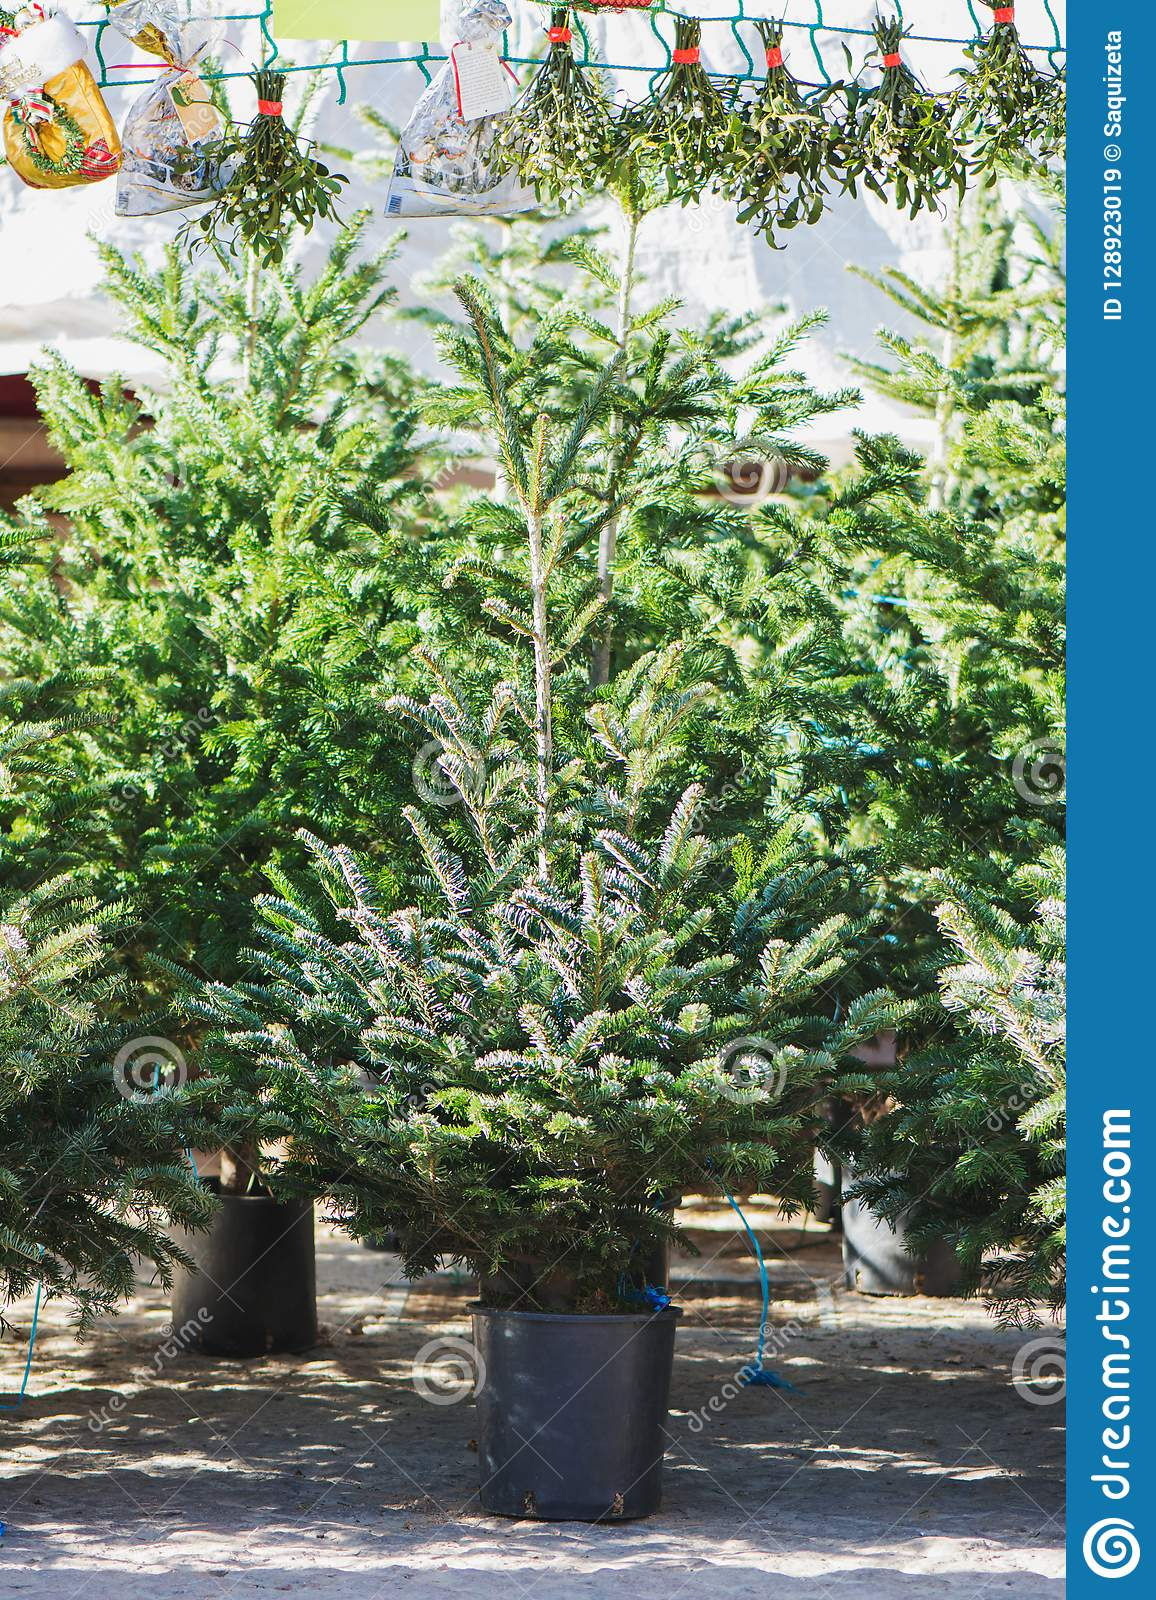 Christmas Trees In Pots For Sale Stock Image - Image of christmas, forest: 128923019